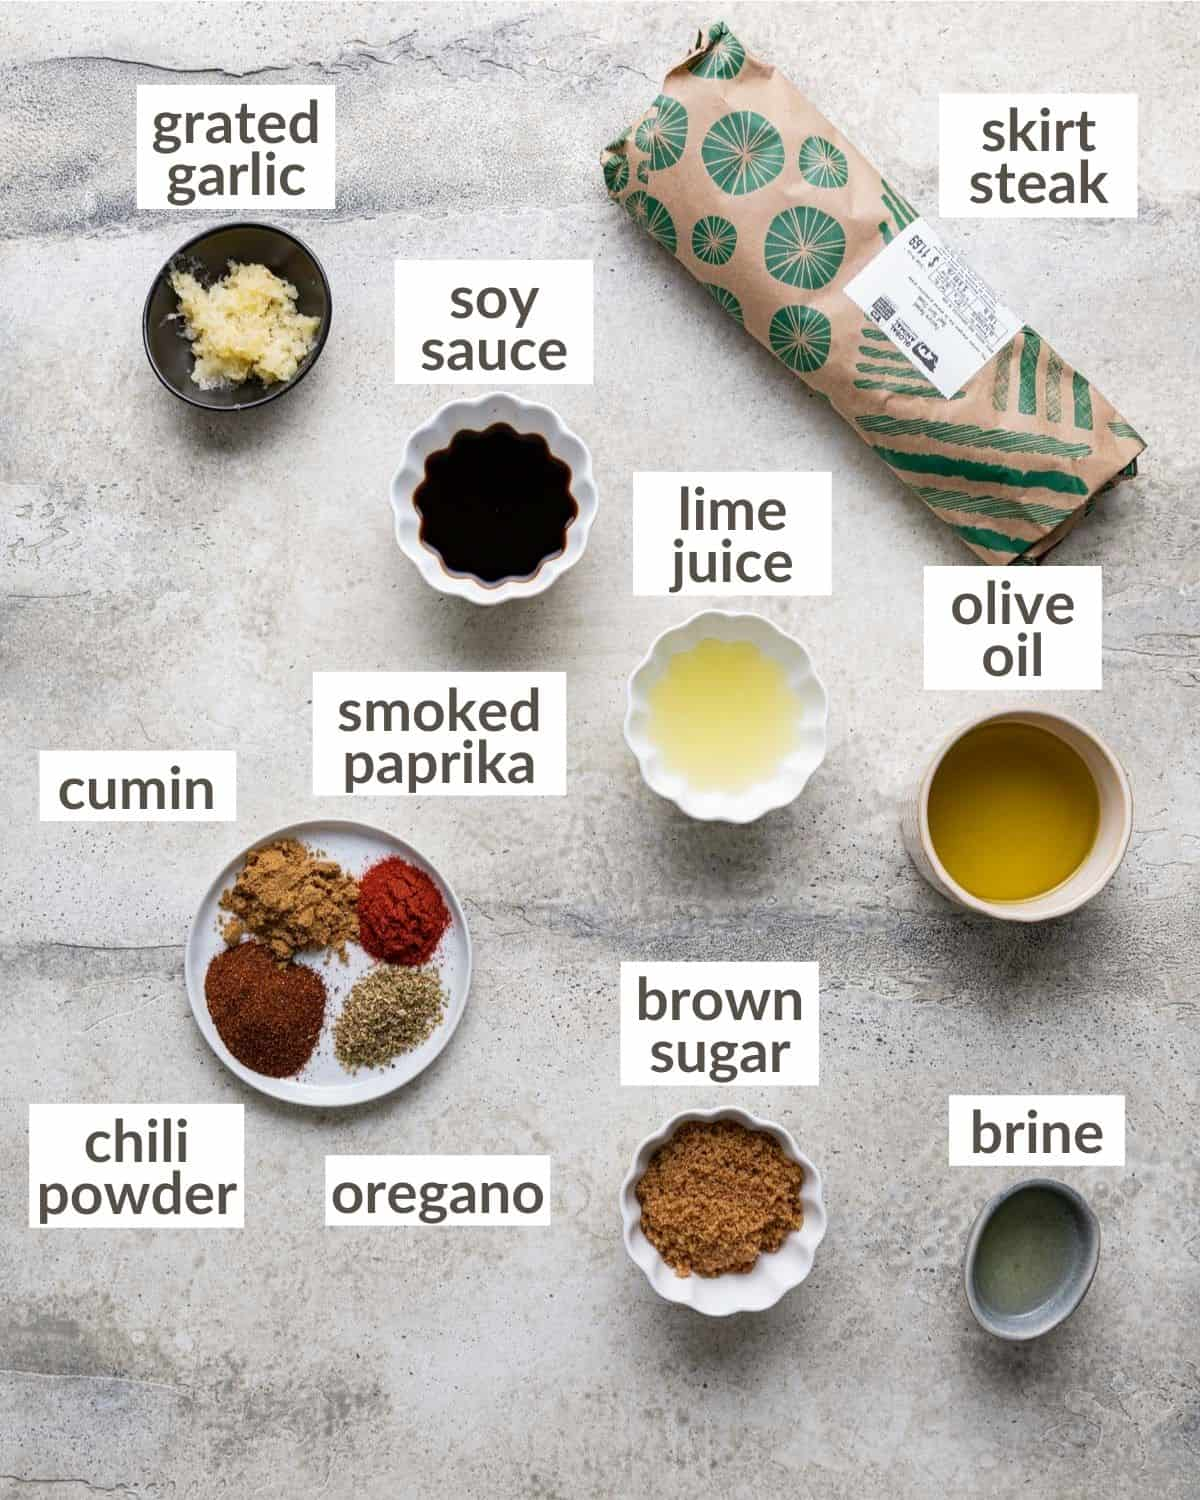 overhead of ingredients for marinade and steak